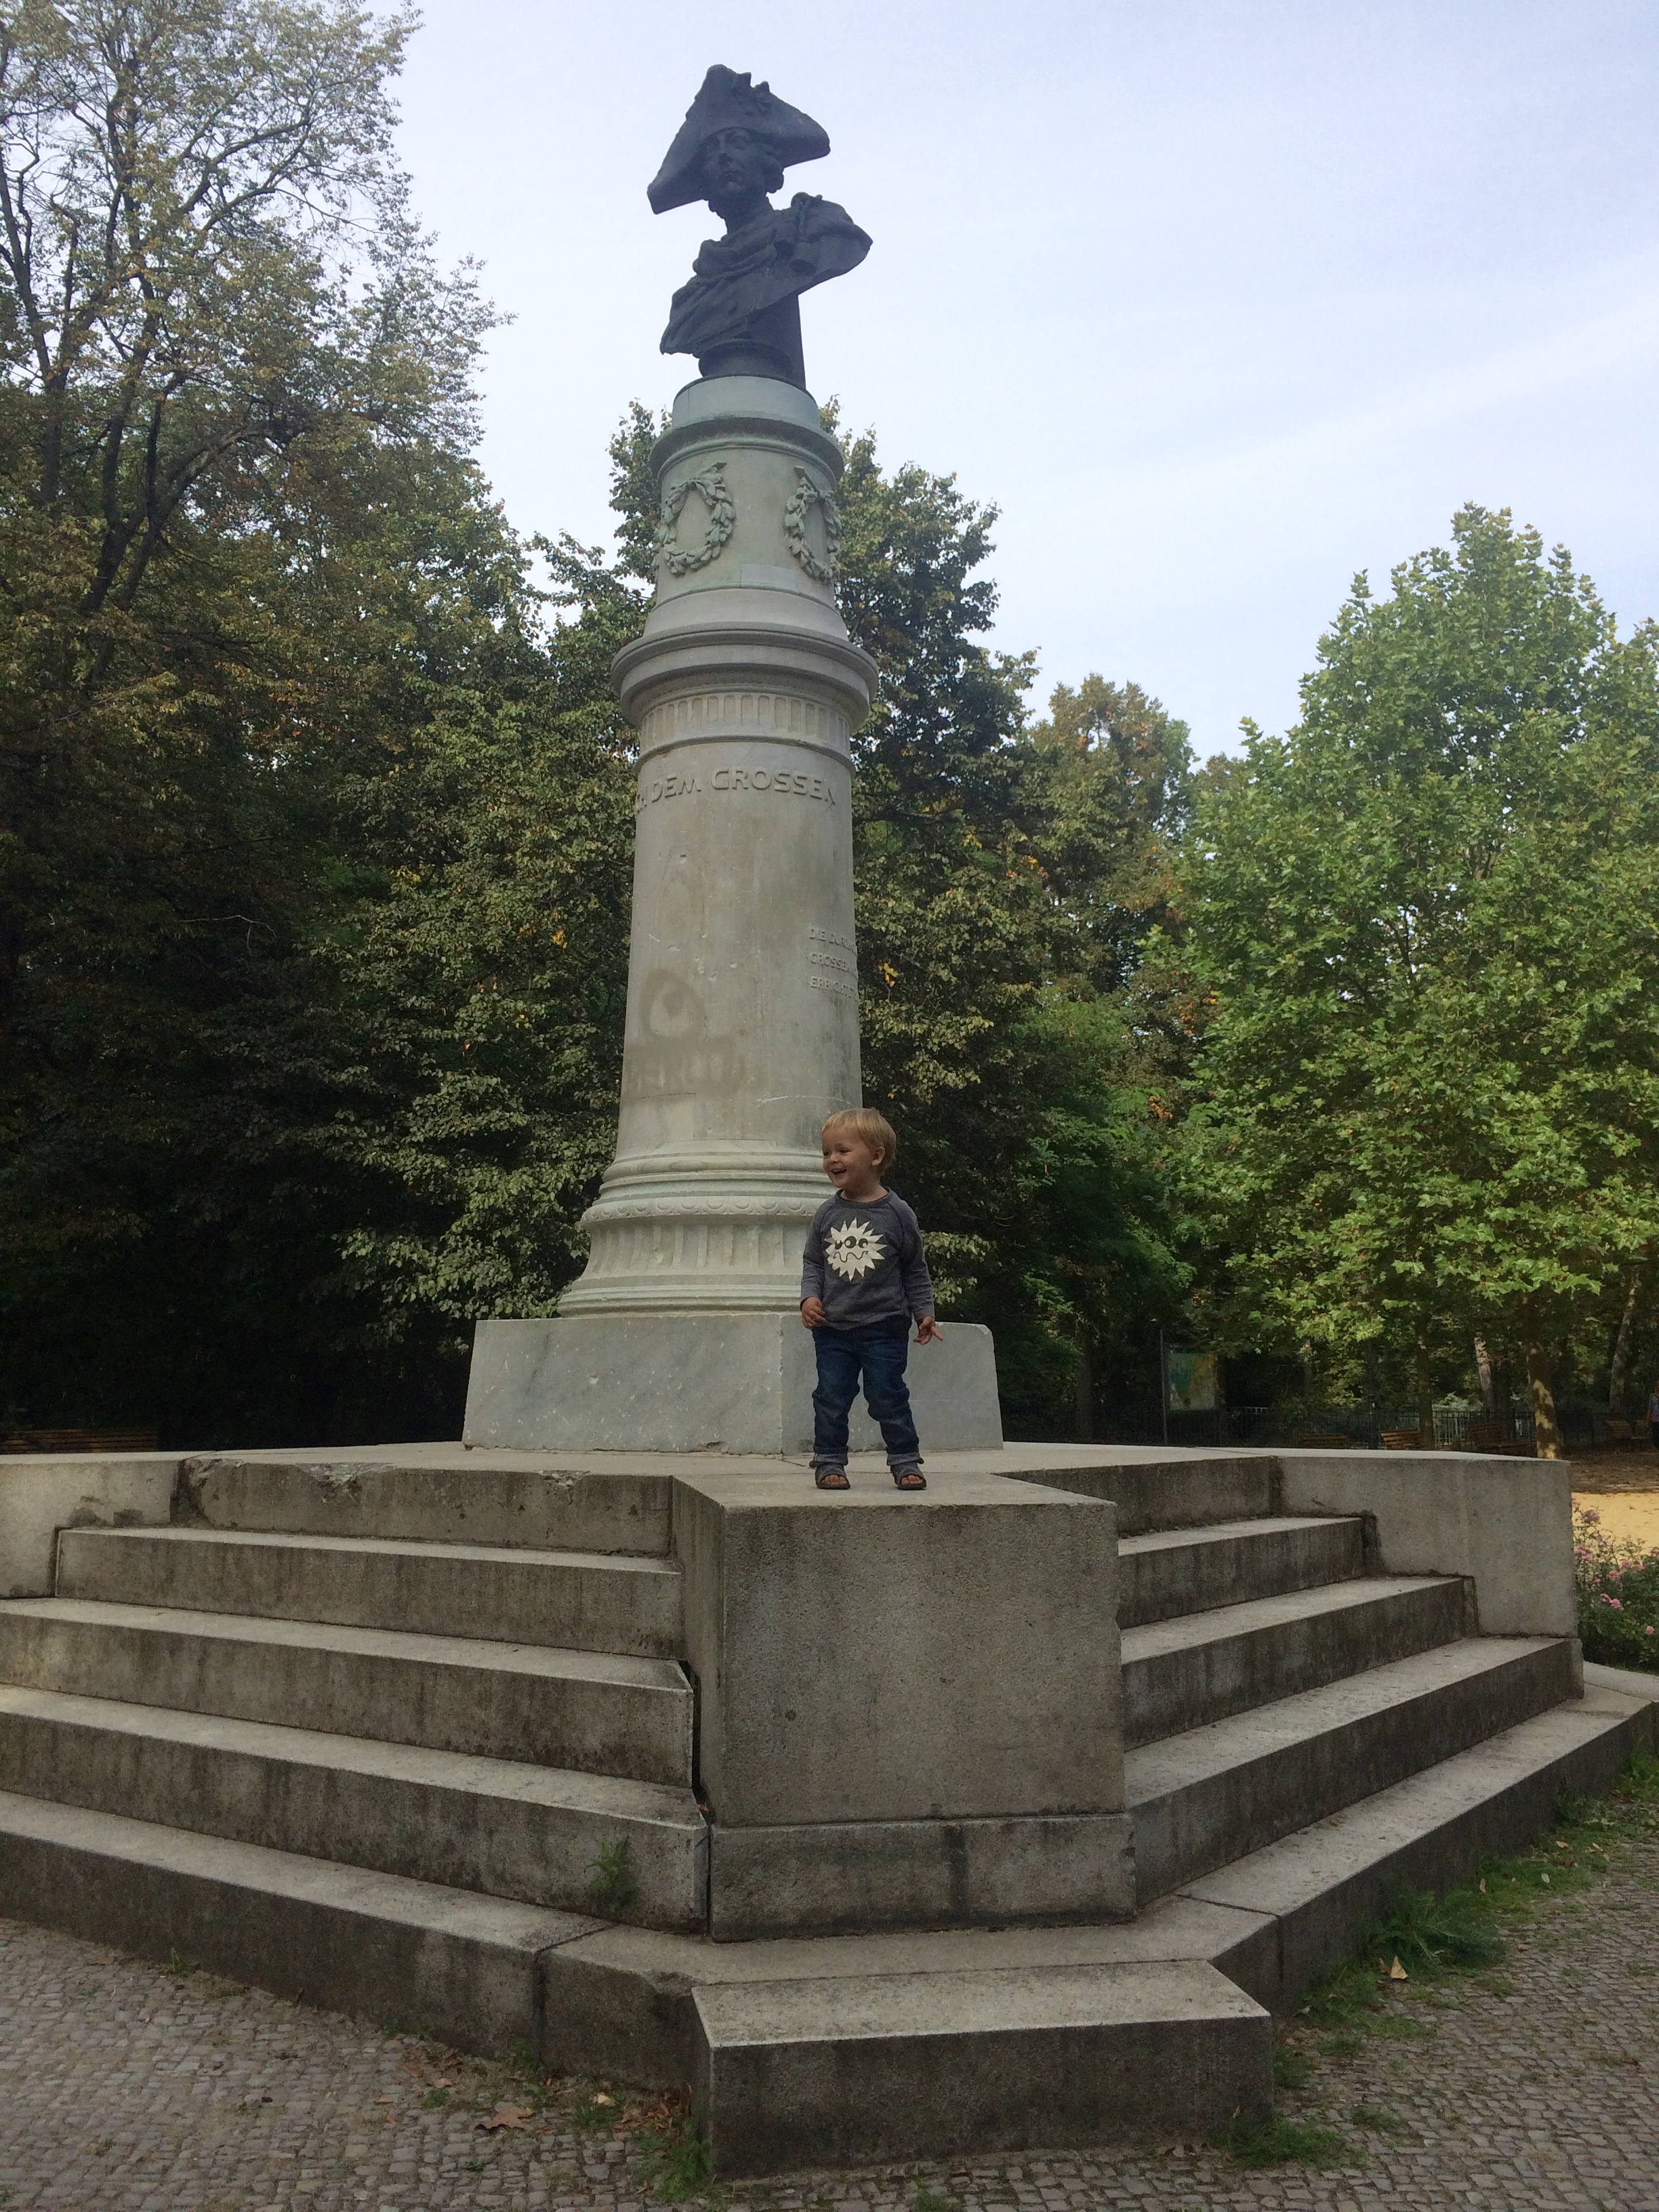 we found this statue and hugo thought it was a stage and hugo kept screaming halleluja i don't know why?